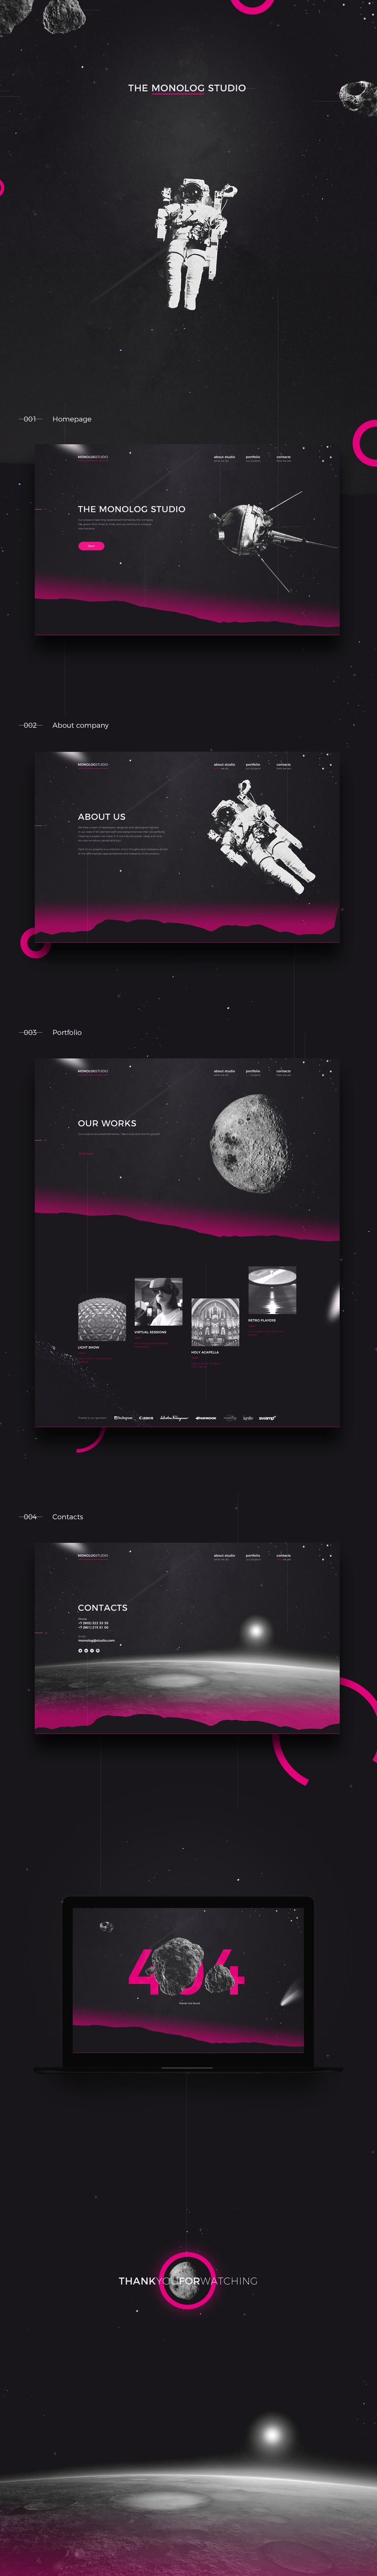 https://www.behance.net/gallery/47108299/Monolog-Website